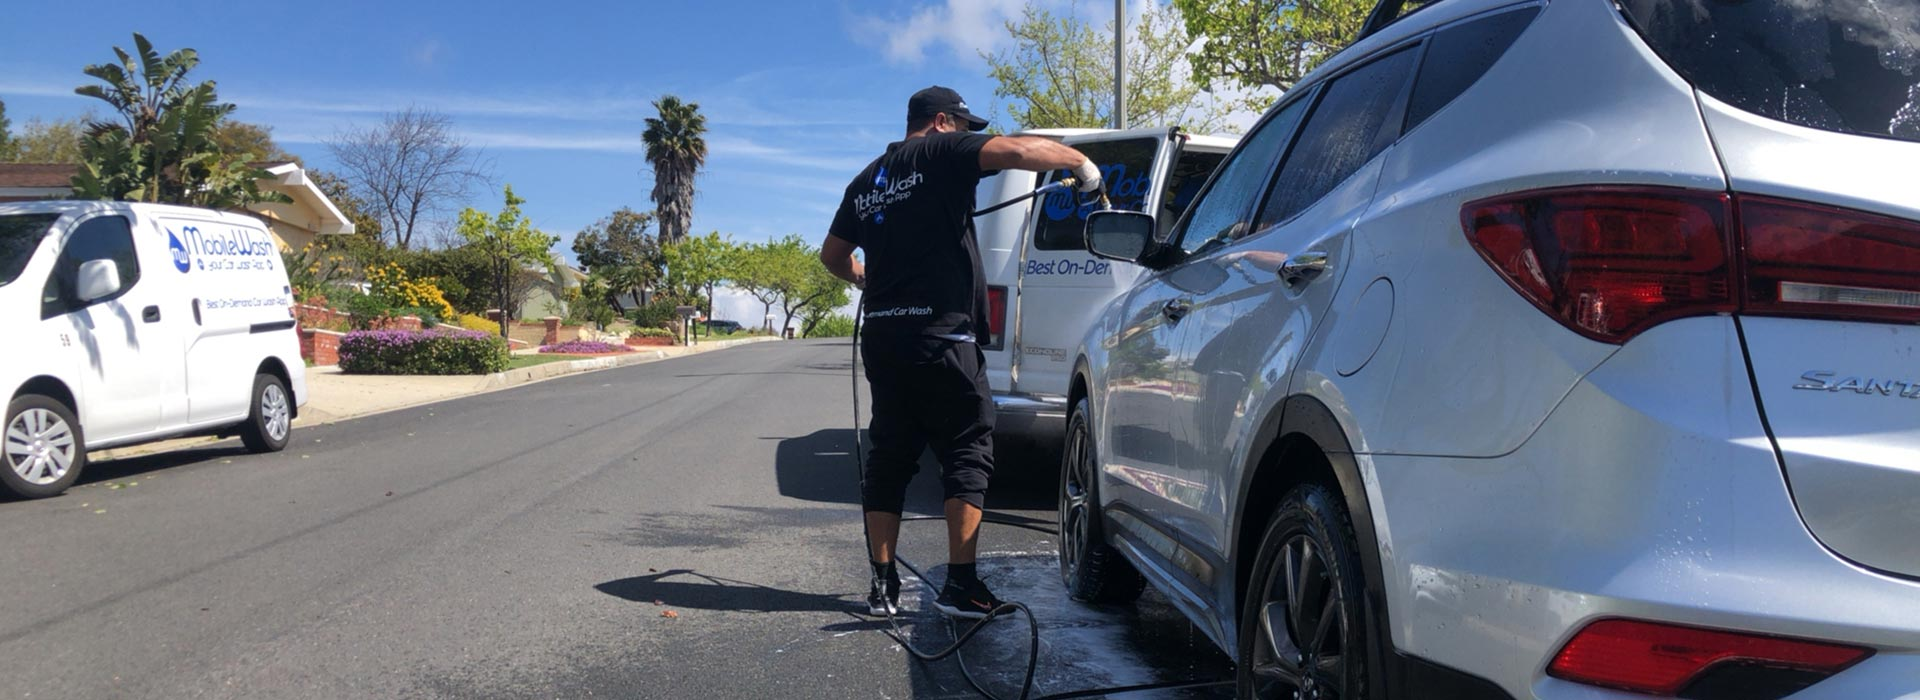 The Best Car Wash in Santa Ana for Working People